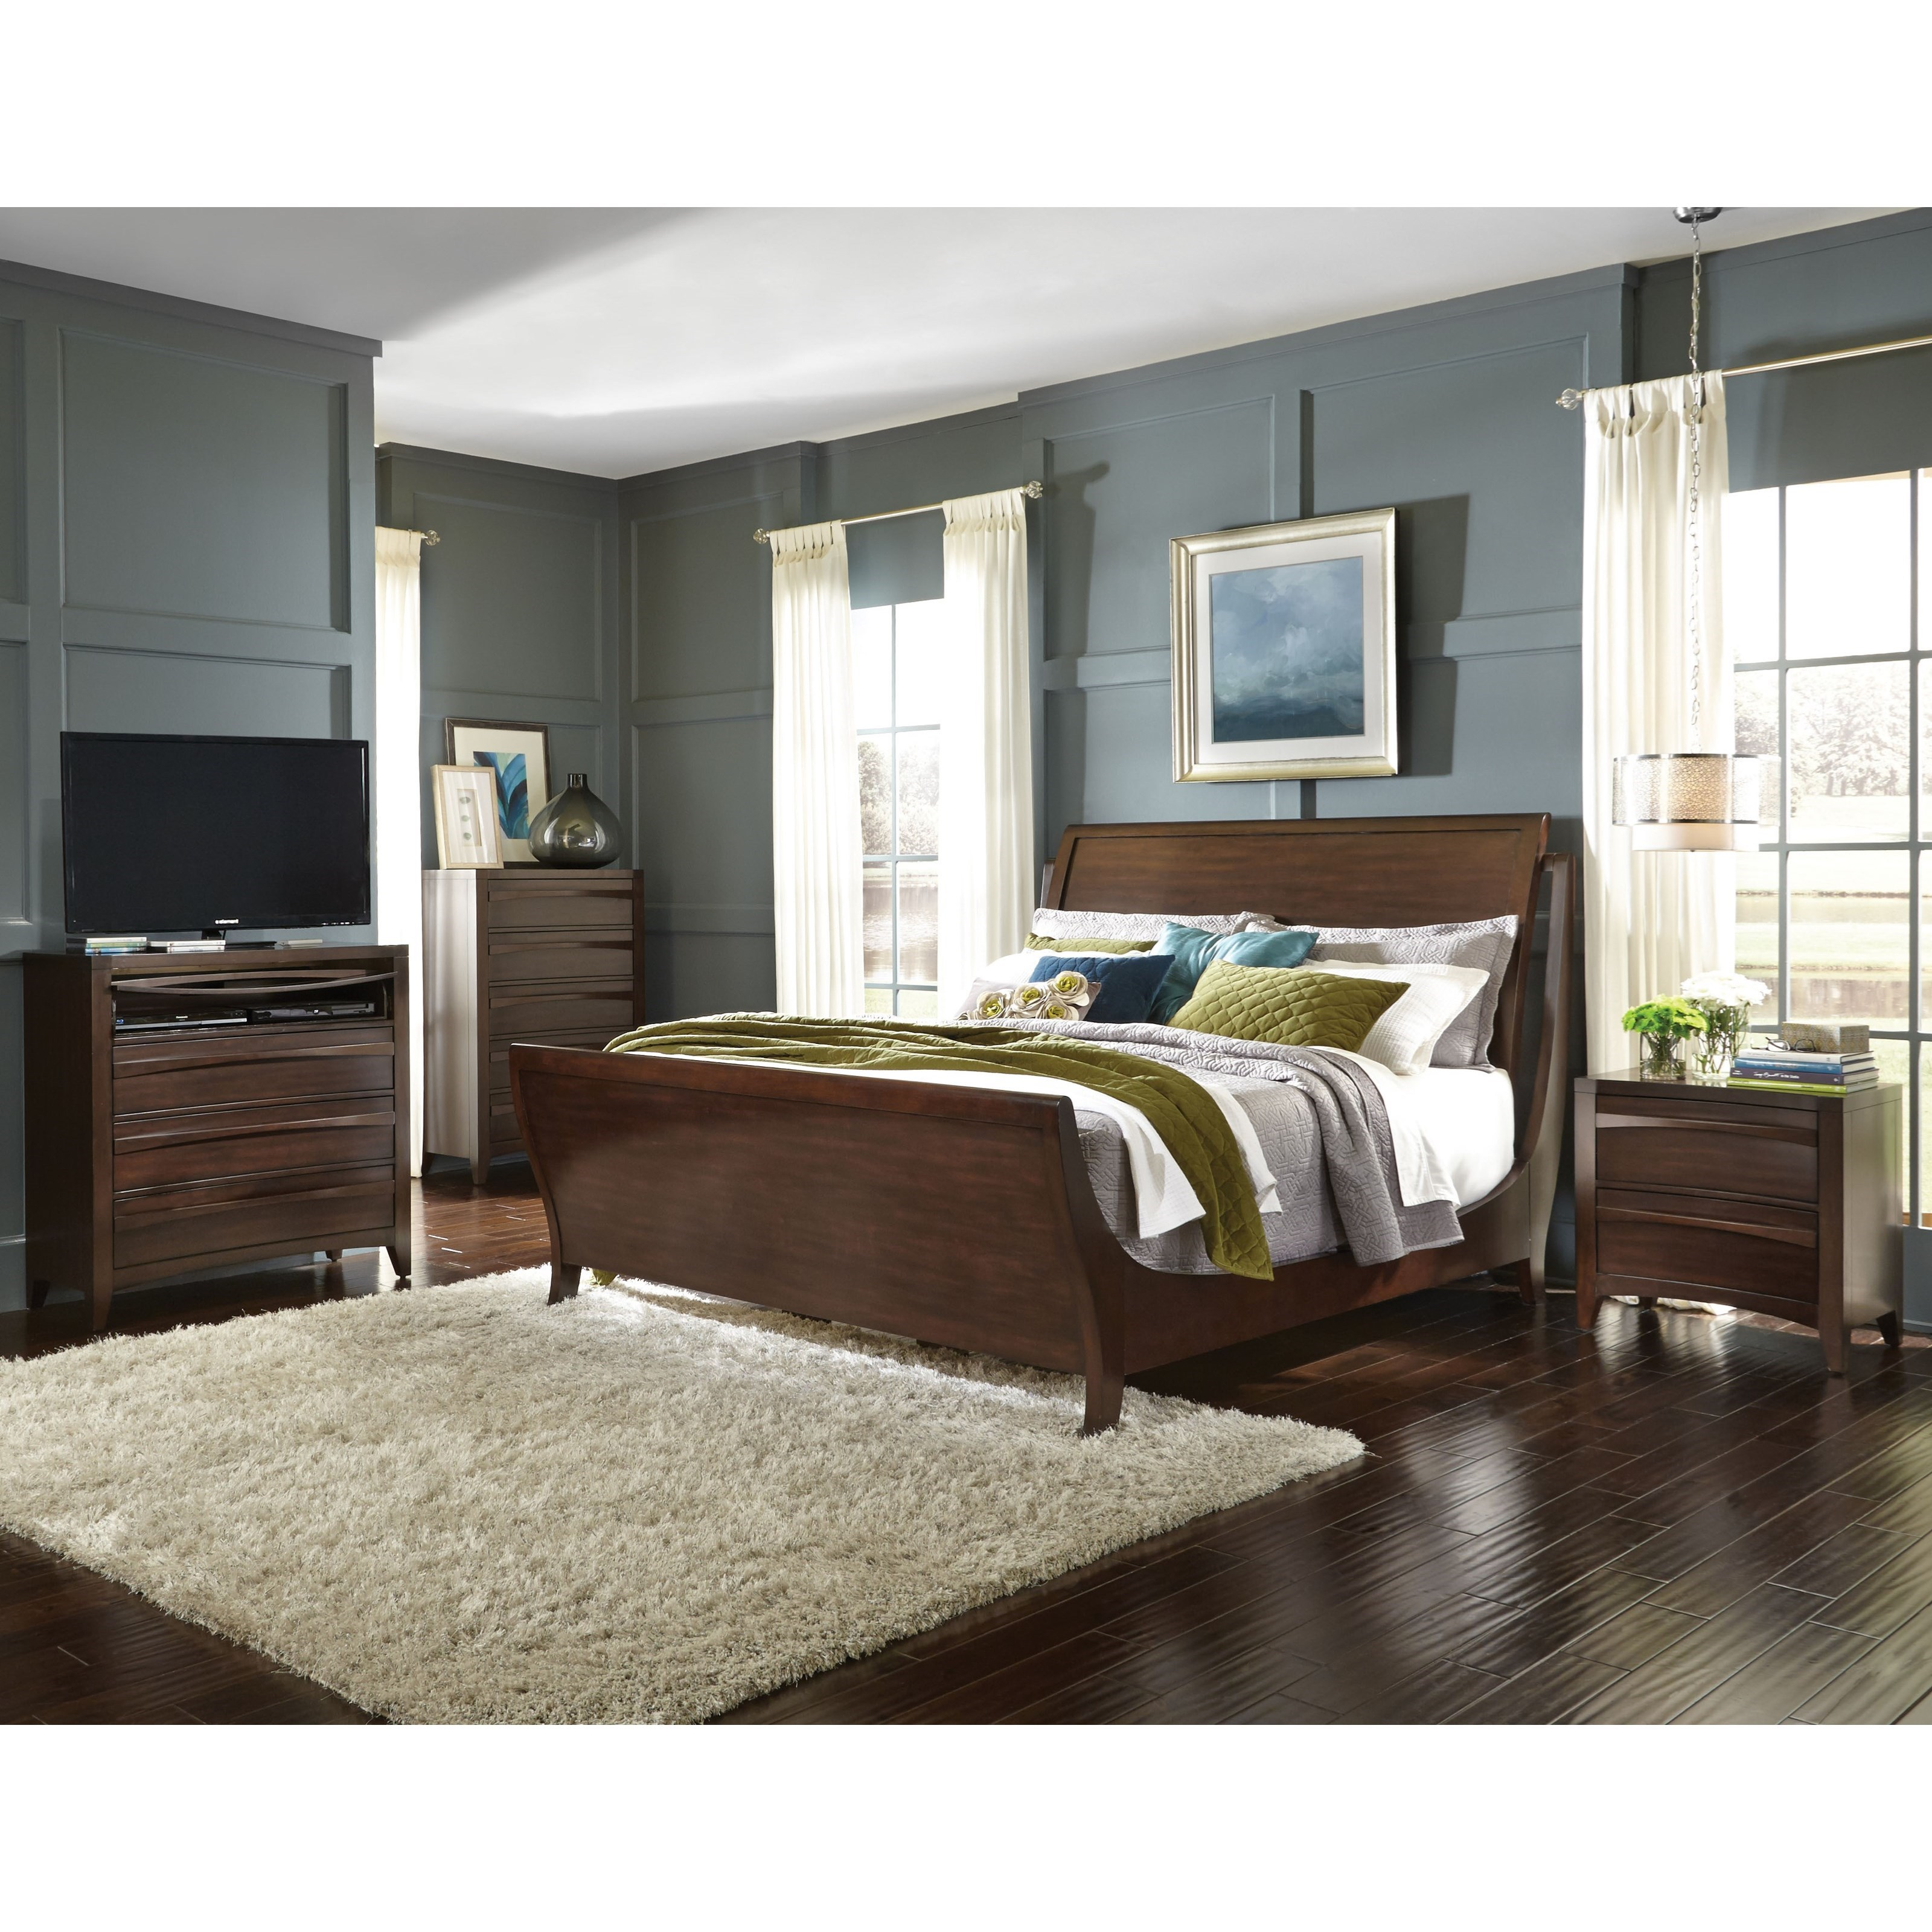 Media Chest Bedroom Standard Furniture Contour Queen Bedroom Group With Media Chest